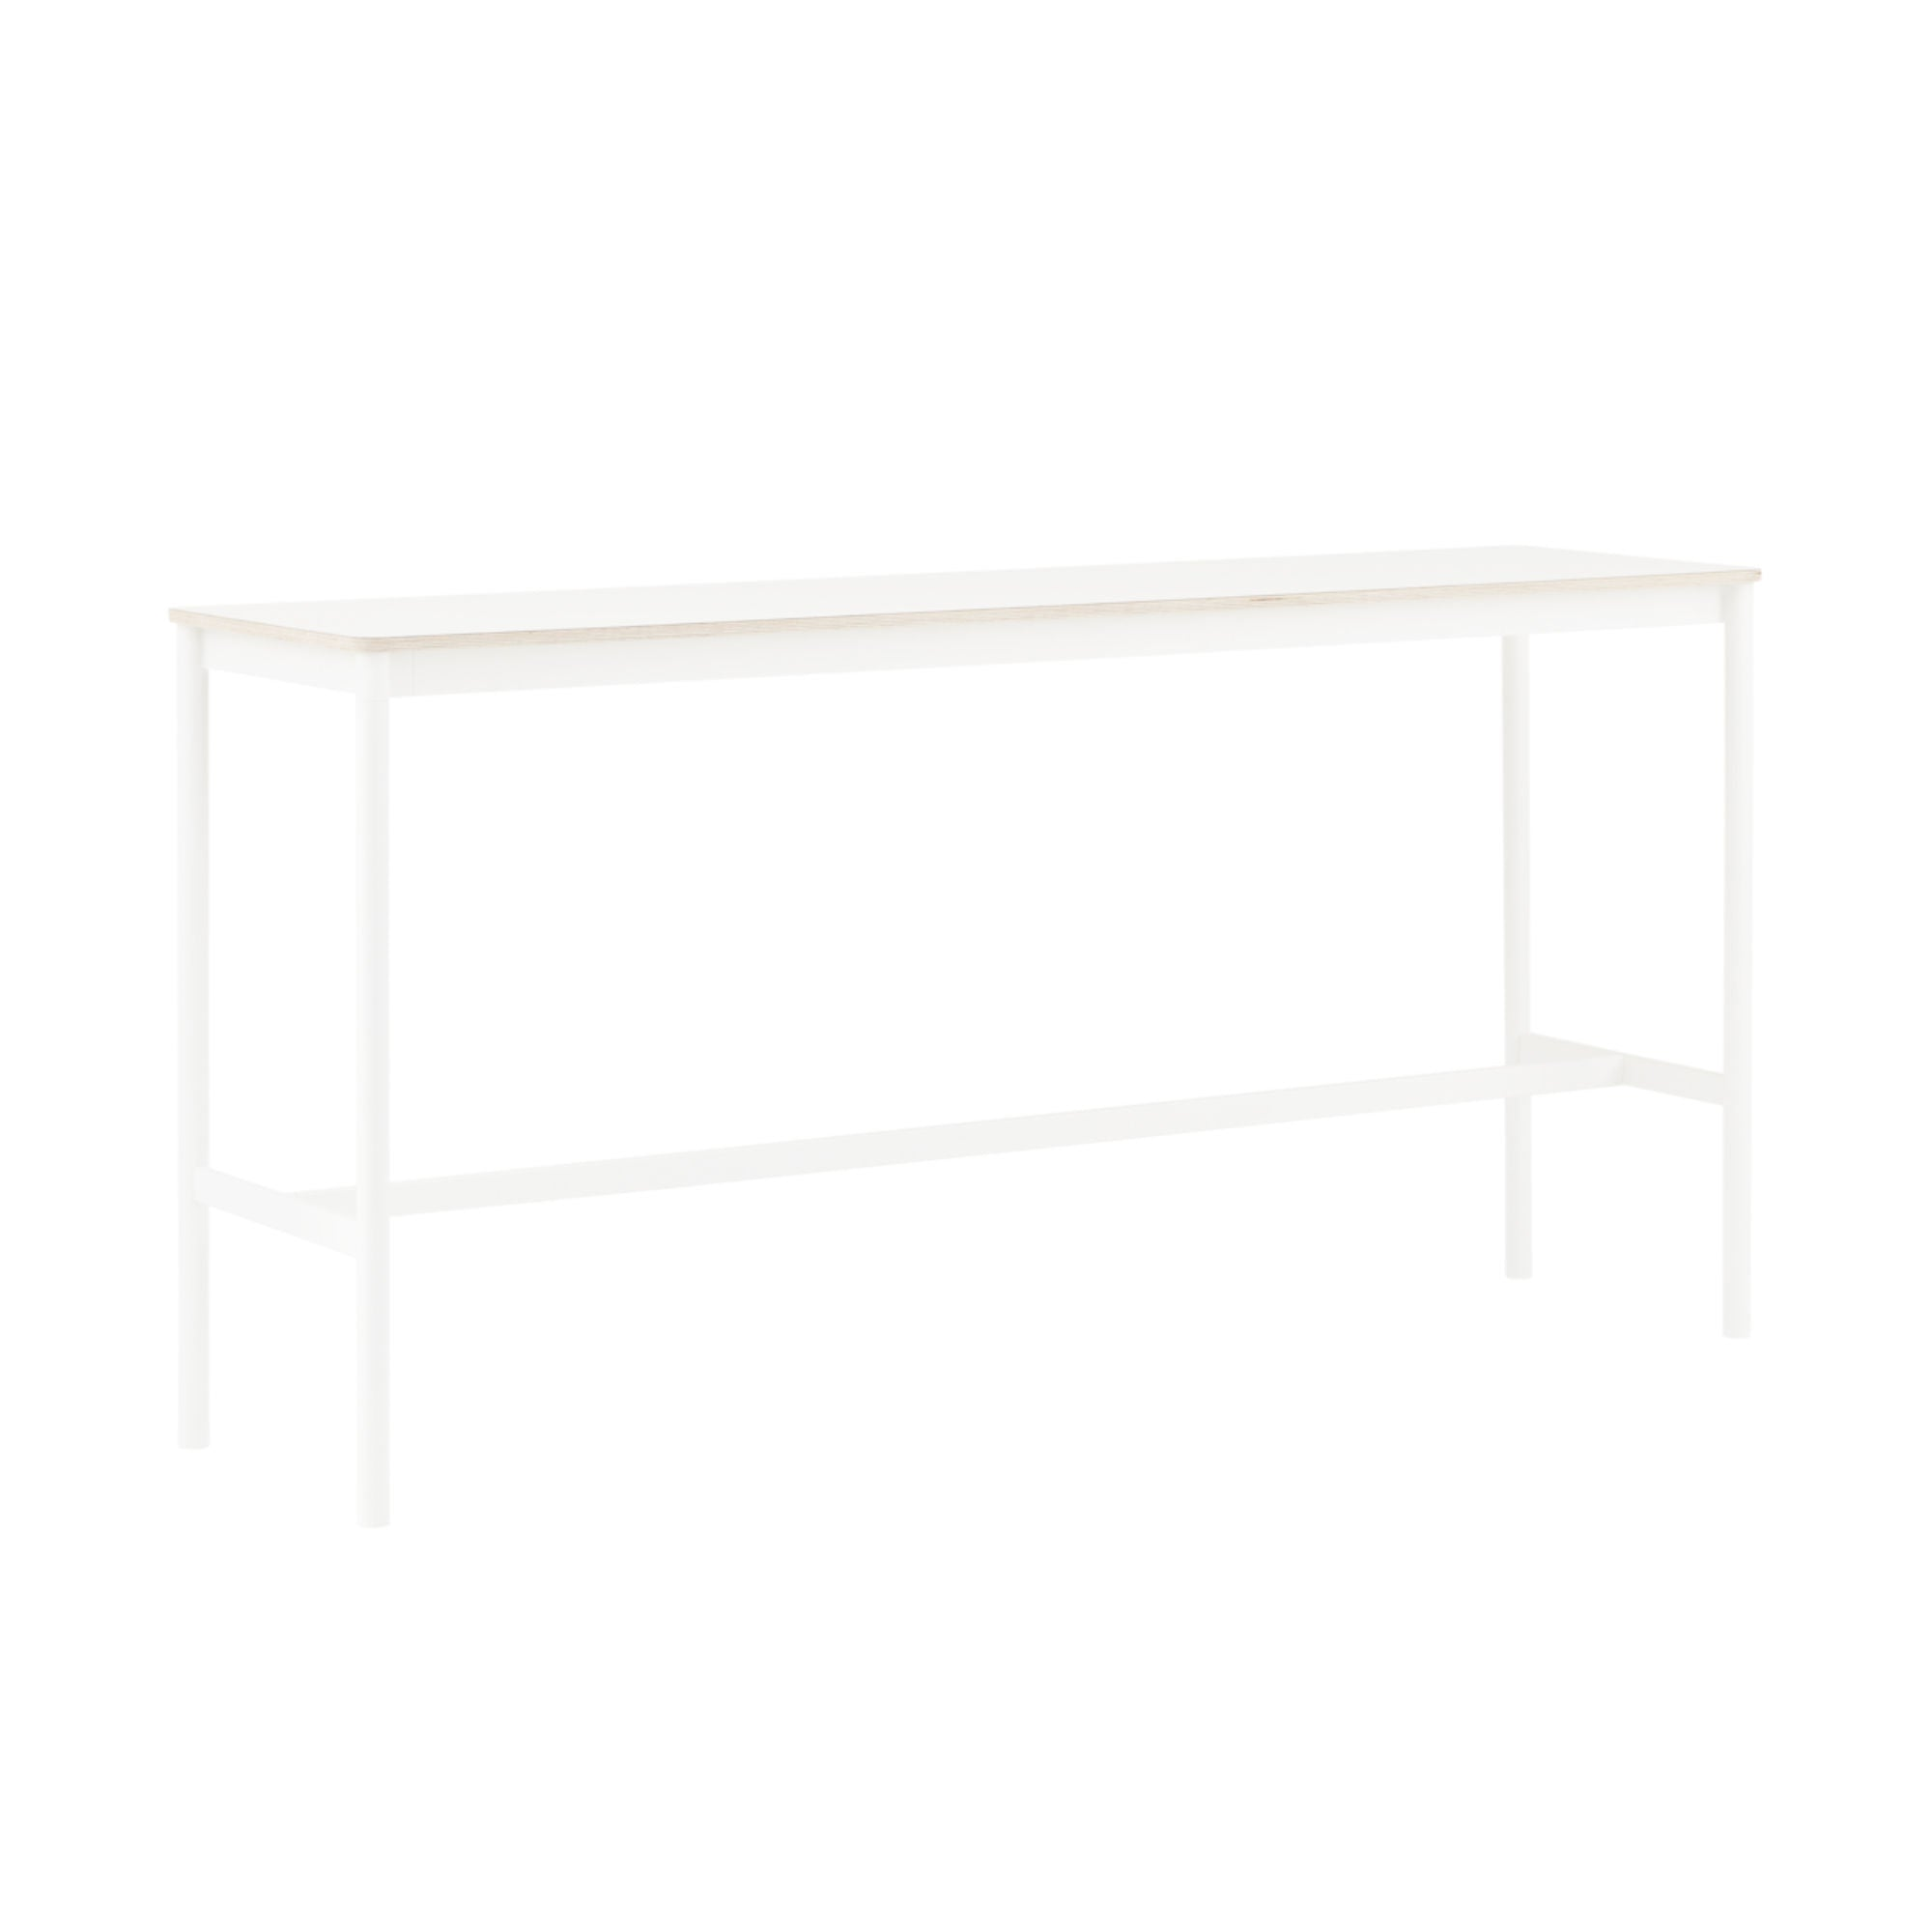 Muuto Base High Table 190x50 h:95cm , White Laminate/Plywood/ White